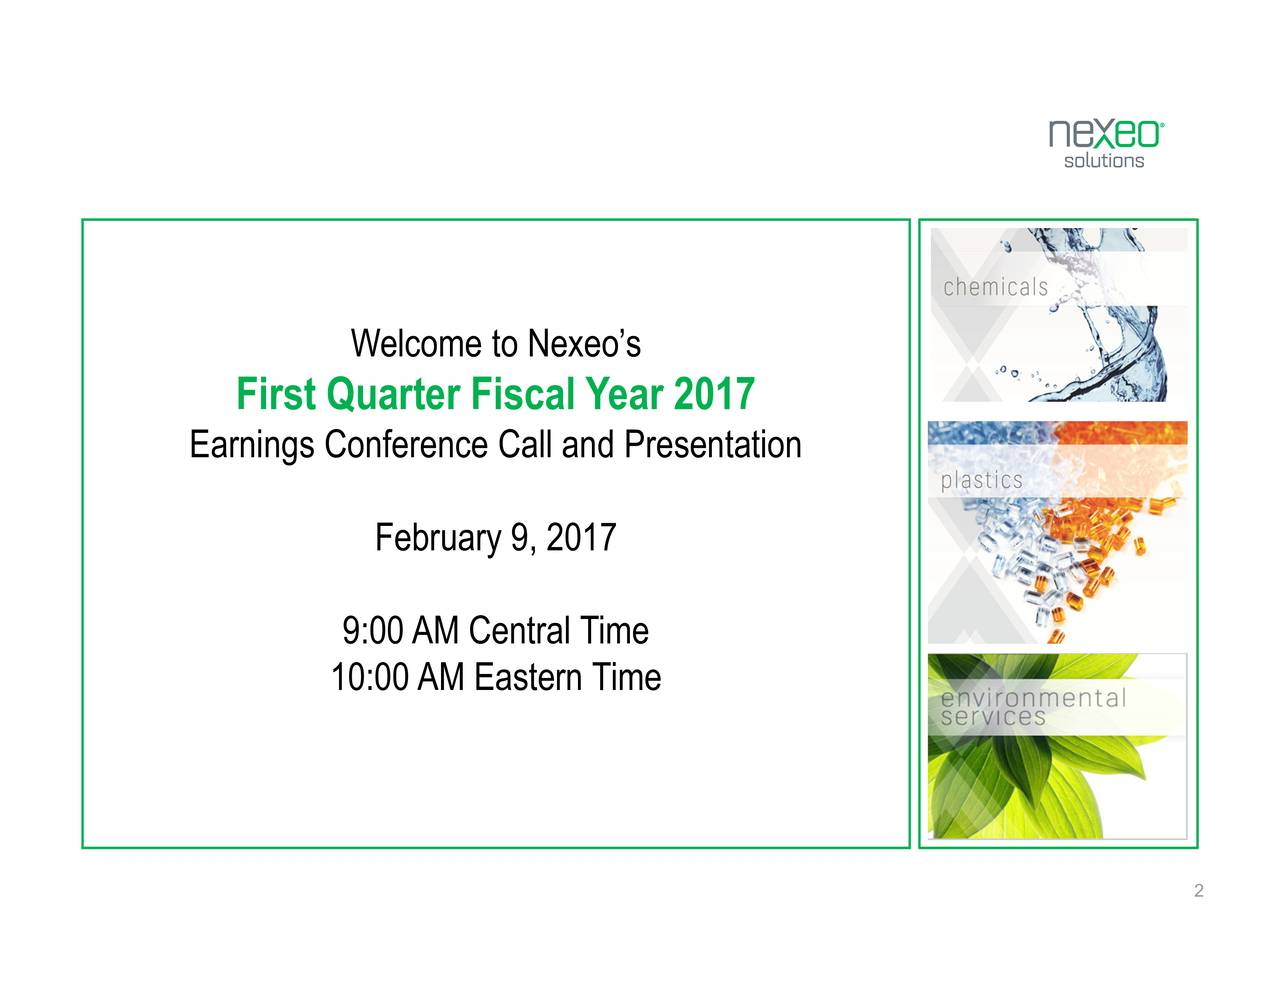 Welcome to Nexeosuary 9, 2017 9:010:00 AM Eastern Time First Quarter Fiscal Year 2017 Earnings Conference Call and Presentation